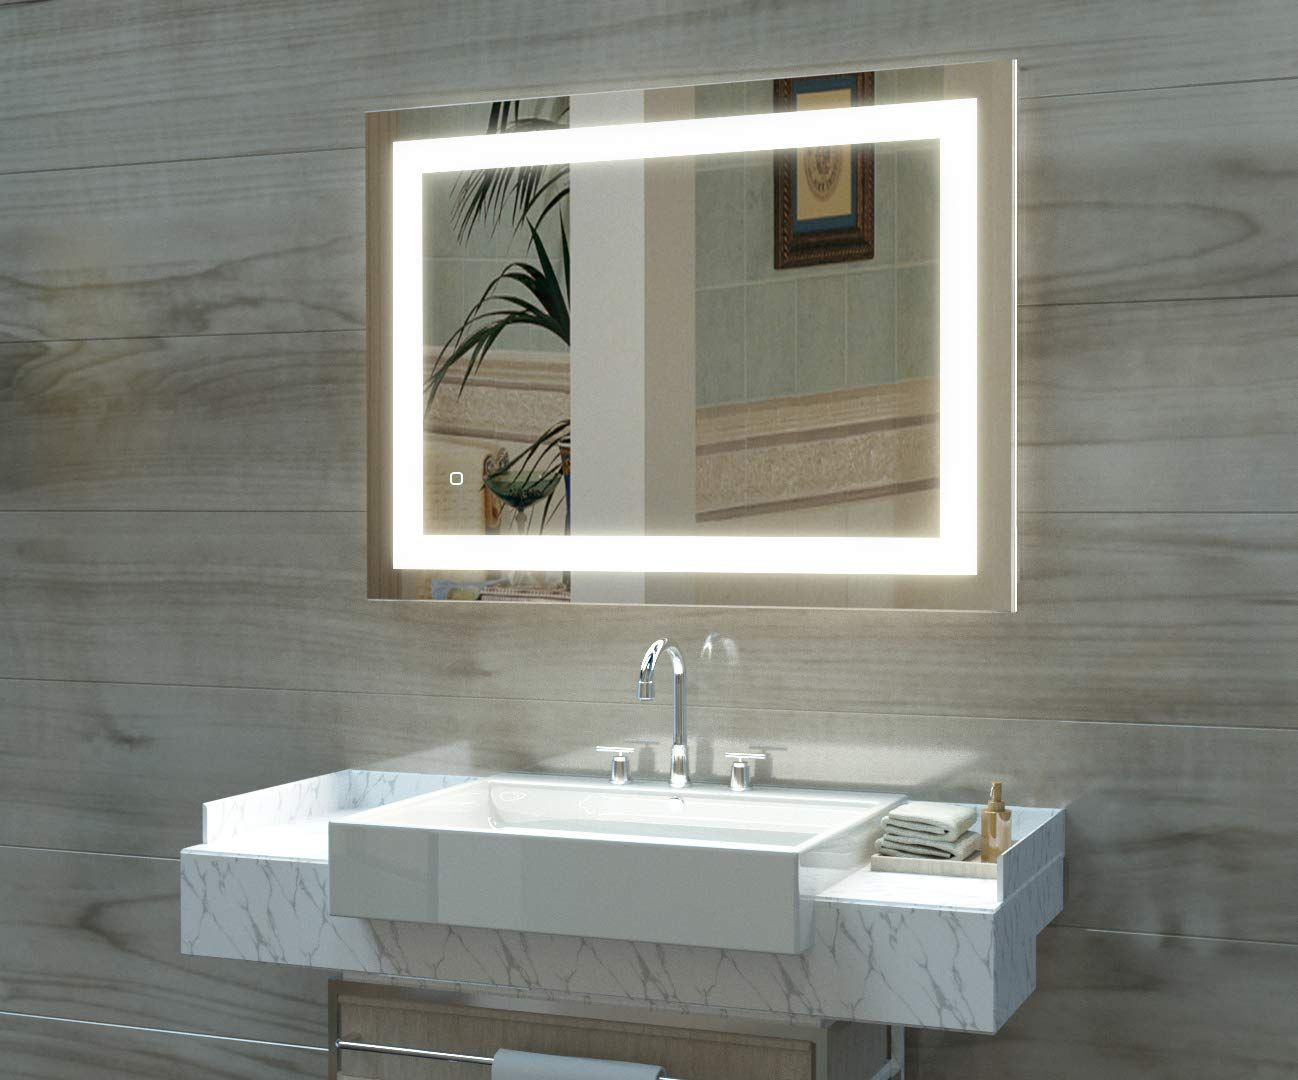 Amazon Com Hauschen 36x28 Inch Led Lighted Bathroom Wall Mounted Mirror With High Lumen Cri Wall Mounted Mirror Large Bathroom Mirrors Bathroom Mirror Lights